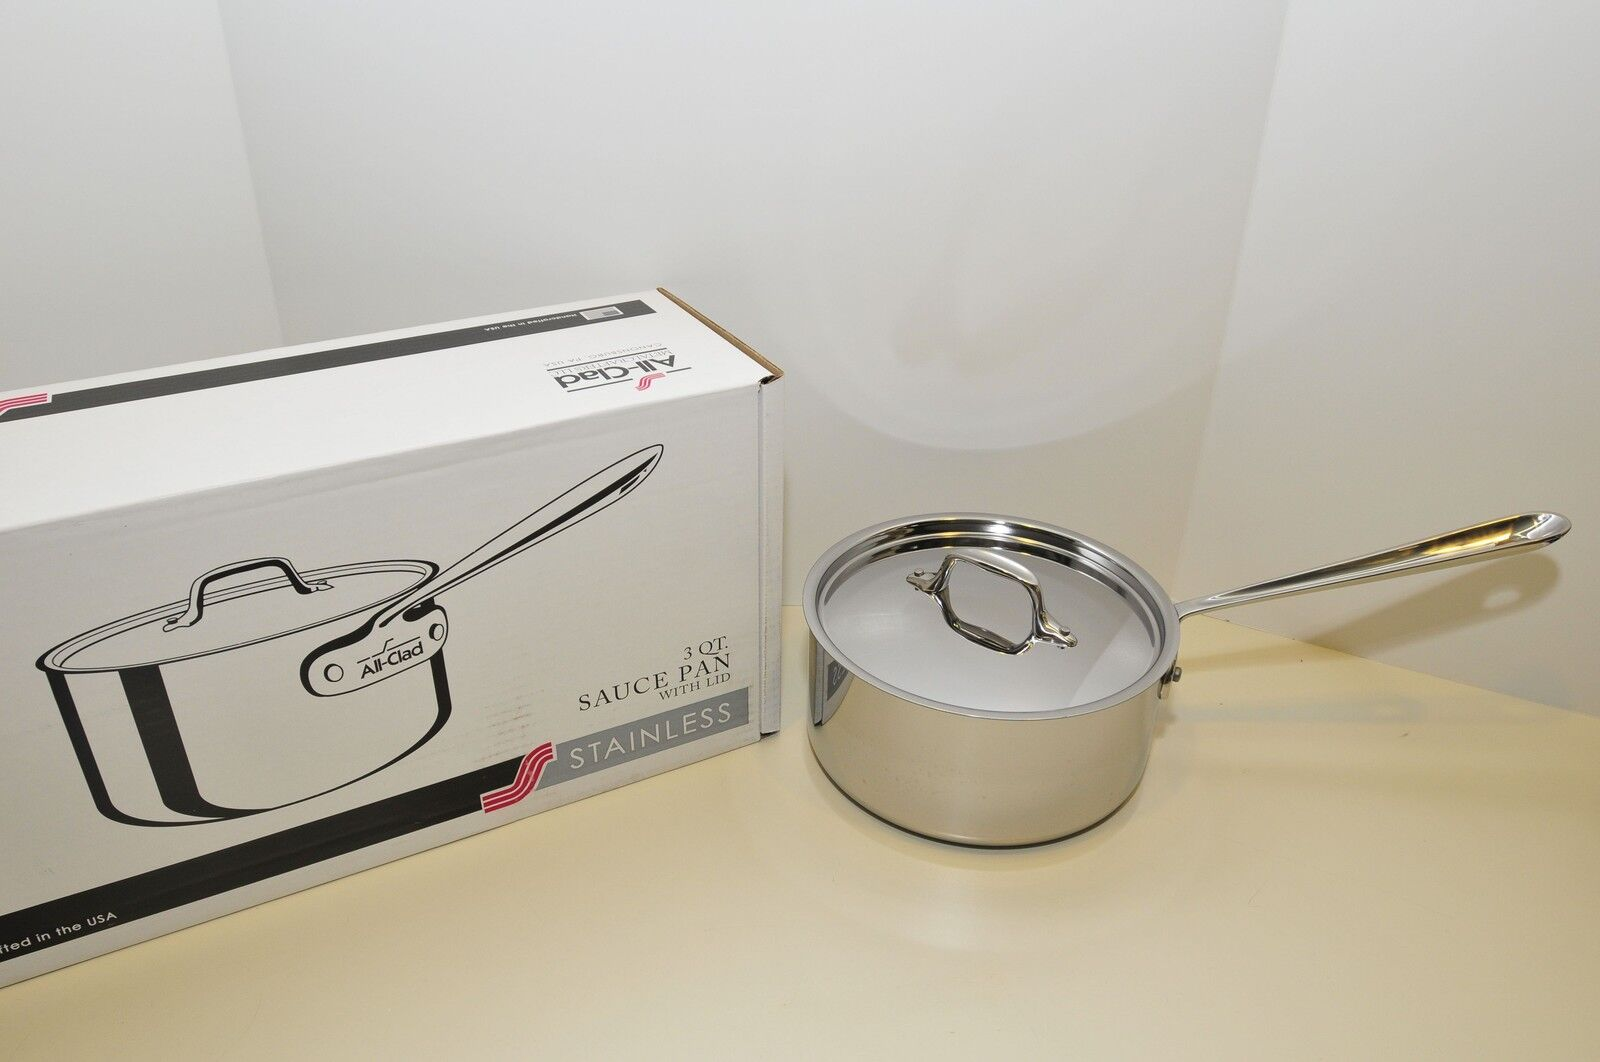 All-Clad 4203 Stainless Steel Tri-Ply Bonded Dishwasher Safe